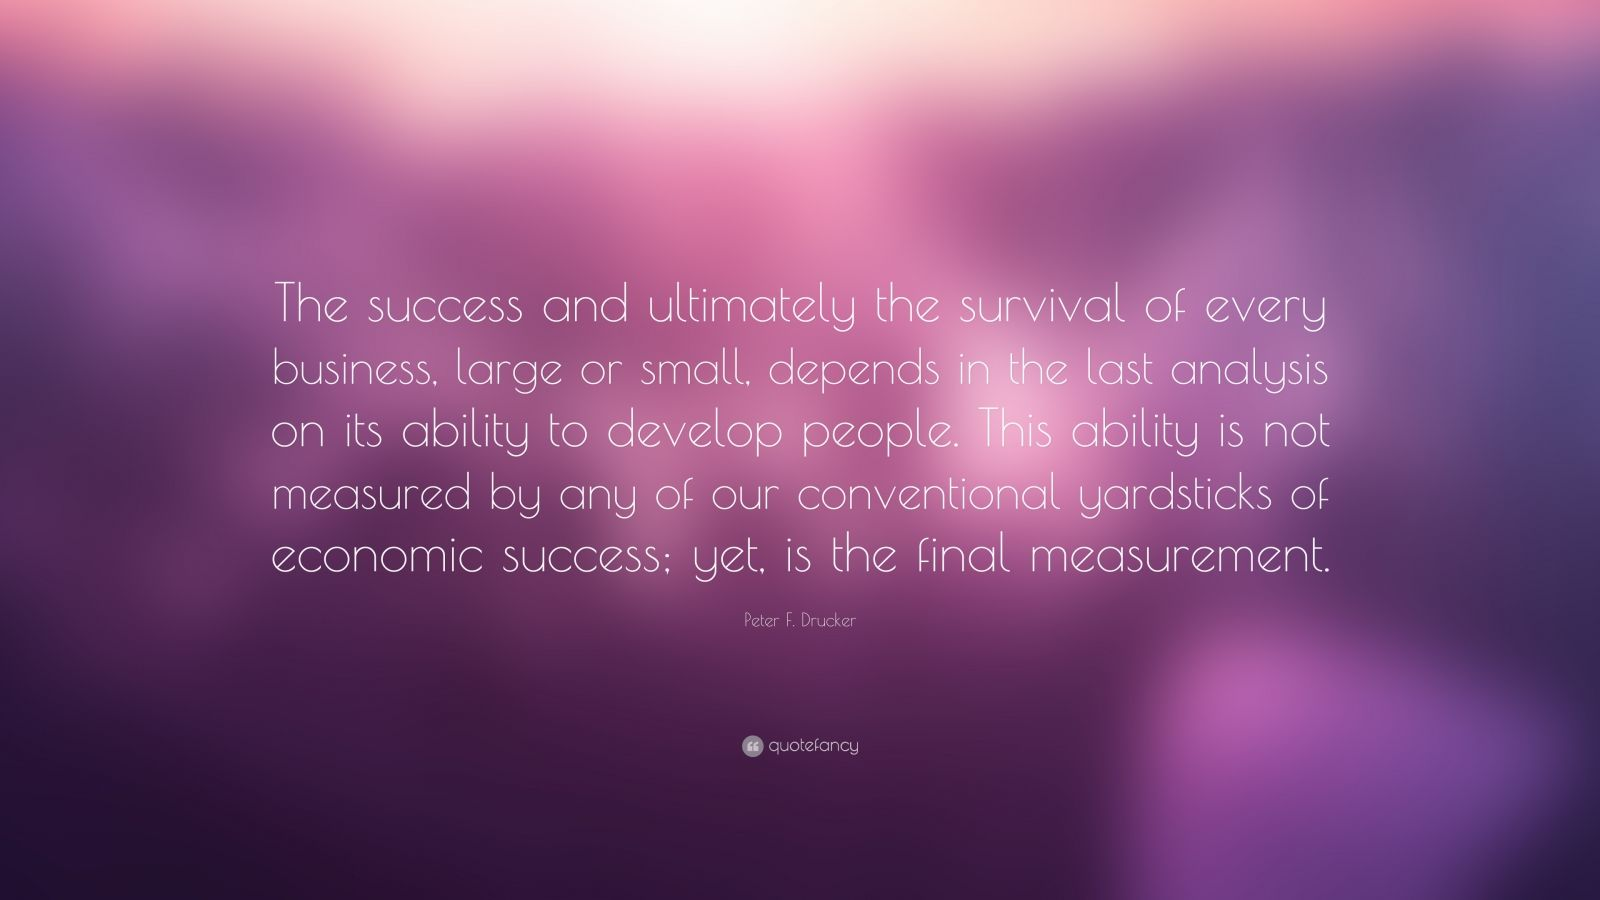 """Peter F. Drucker Quote: """"The success and ultimately the survival of every business, large or small, depends in the last analysis on its ability to develop people. This ability is not measured by any of our conventional yardsticks of economic success; yet, is the final measurement."""""""